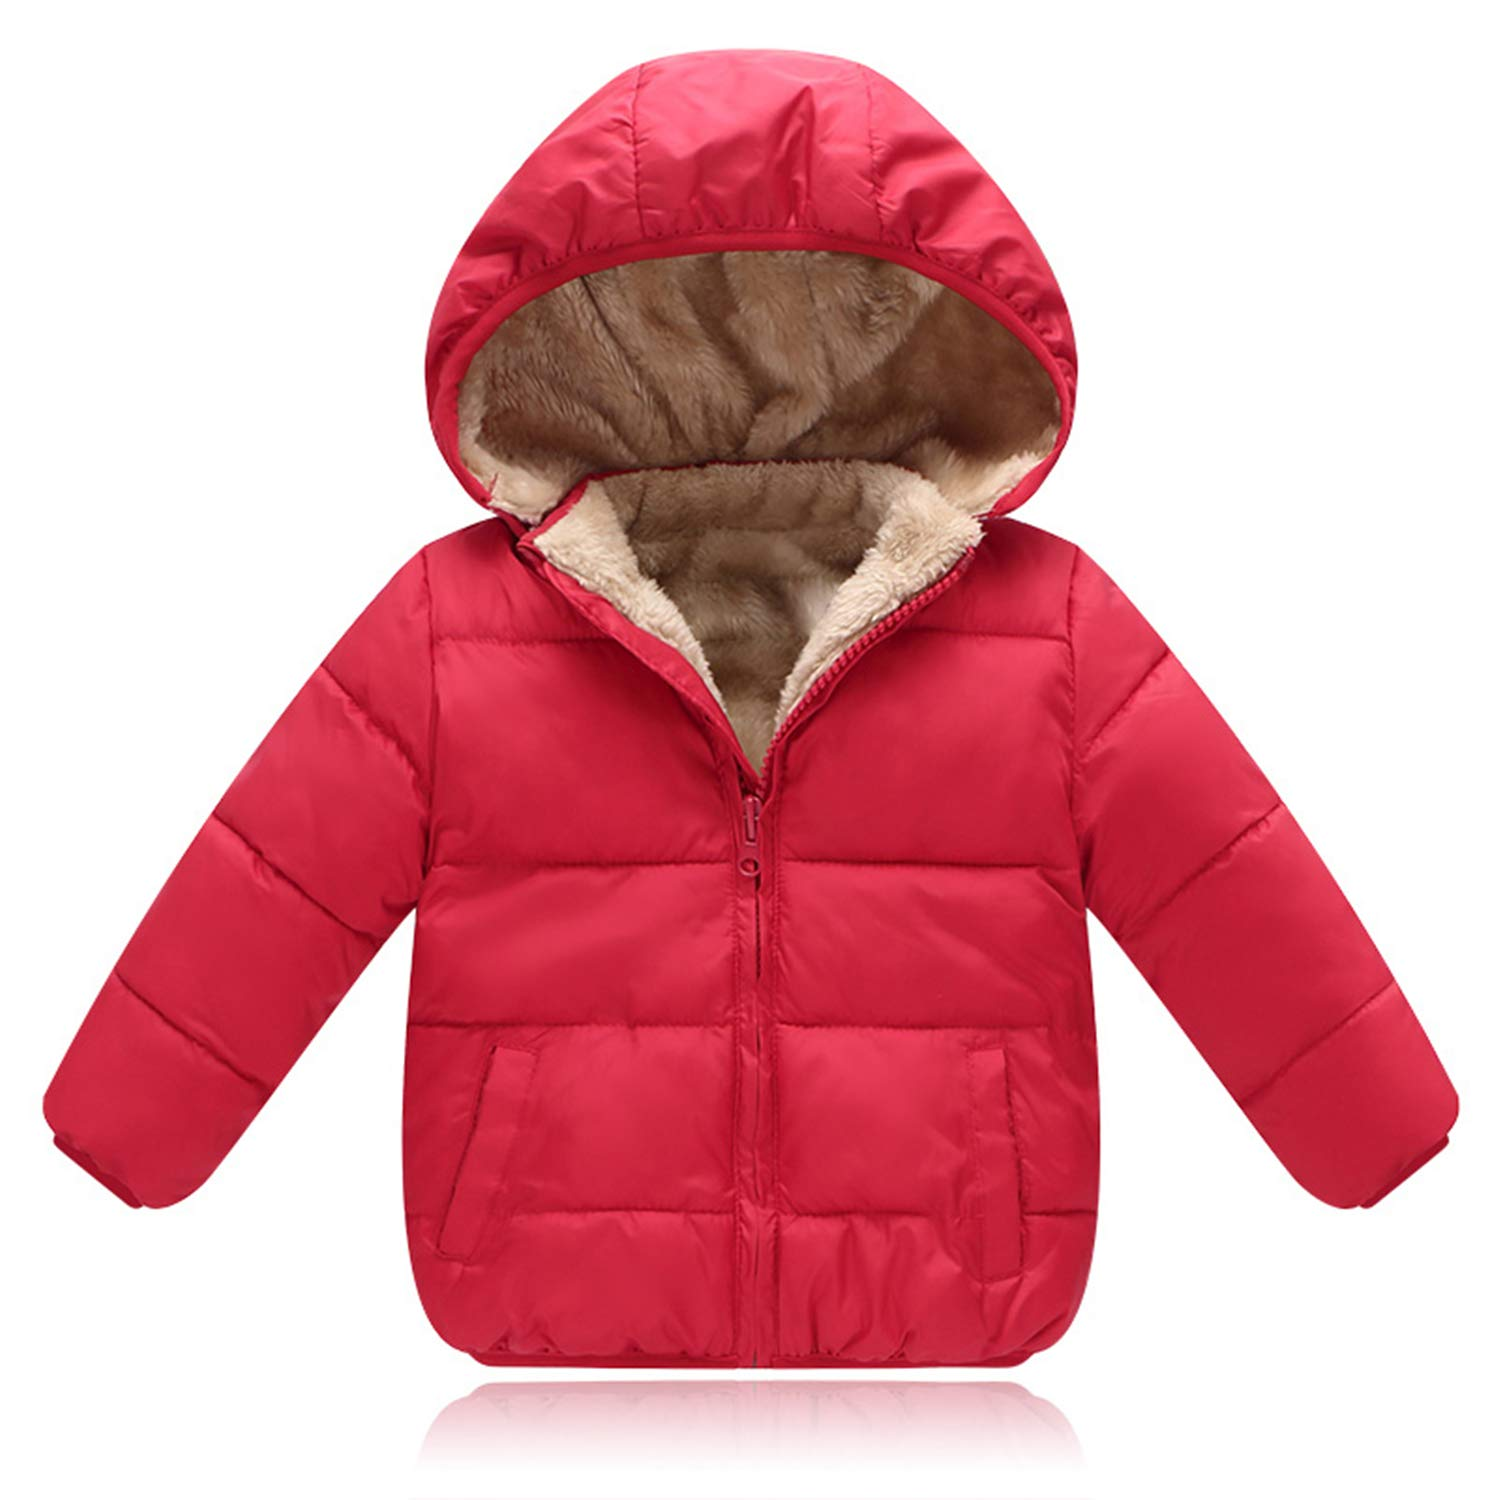 Processes Children Outerwear Coat Winter Boys Girls Leisure Sport Jackets Infant Warm Baby Parkas Thicken Kids Hooded Clothes